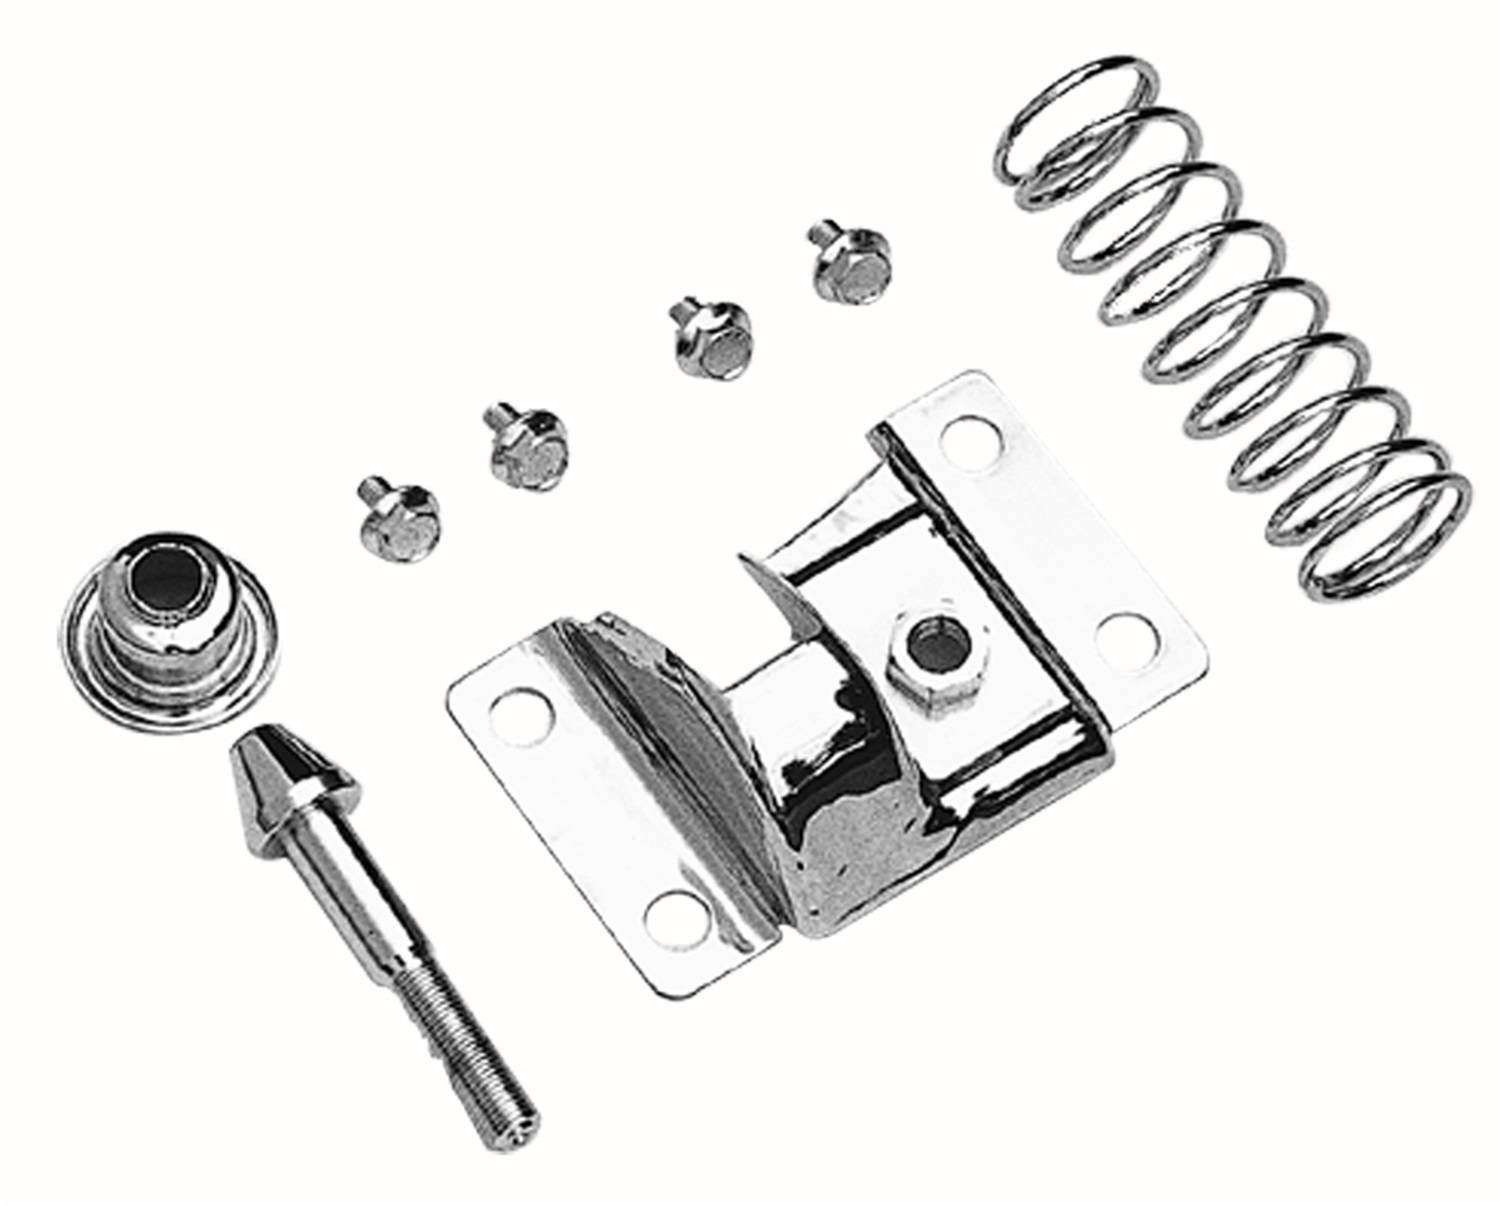 Hood Latch Kit Trans Dapt Performance Products